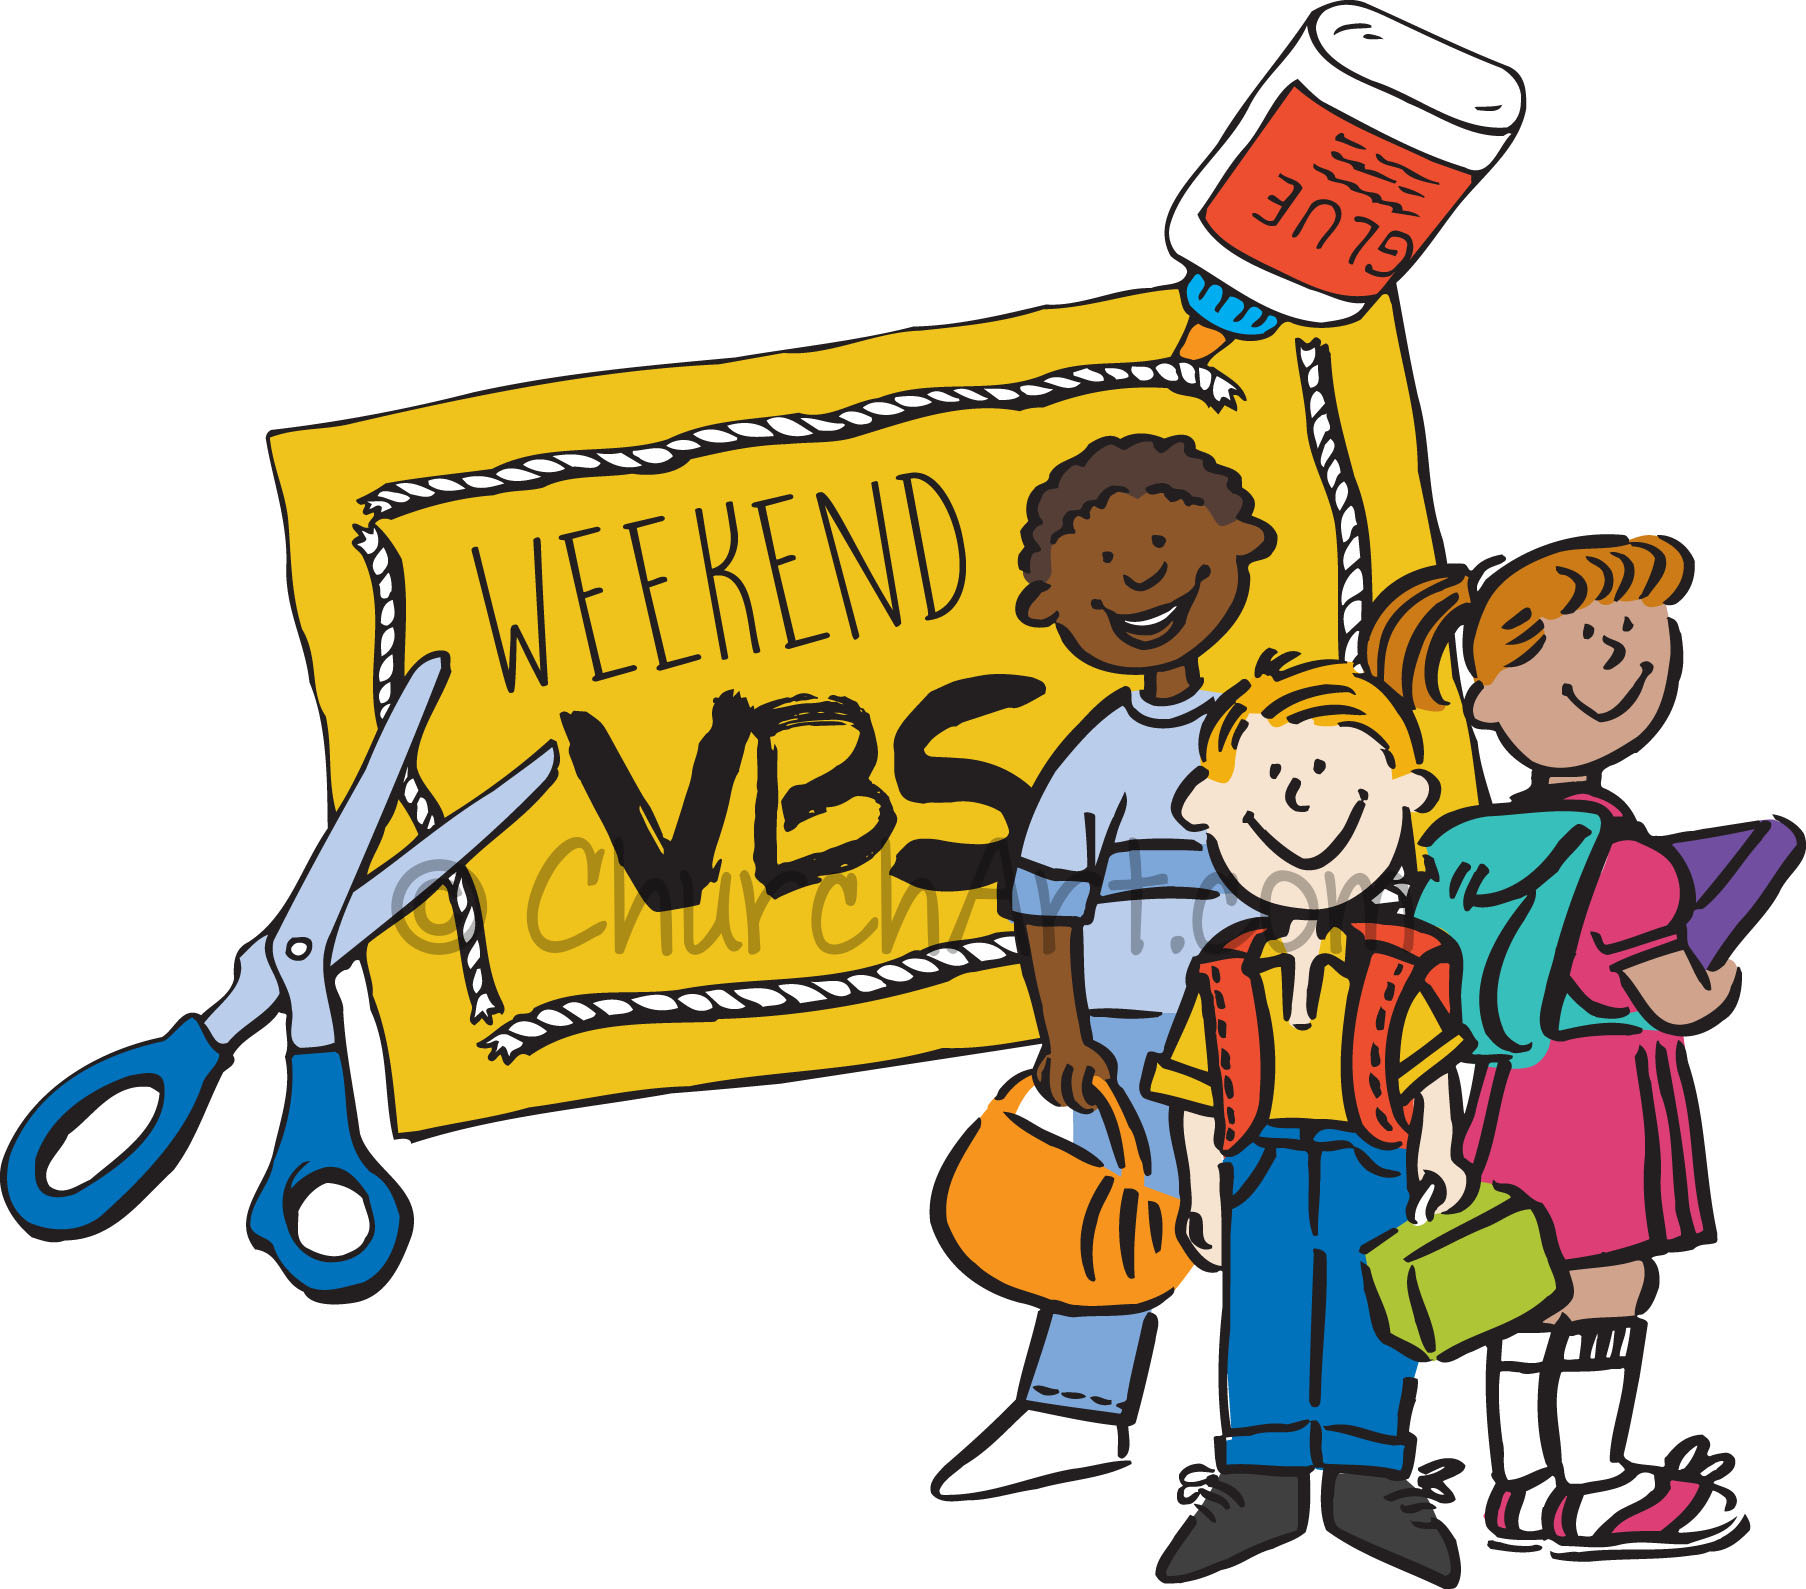 Vacation Bible School Clip-Art  with children, scissors, glue and WEEKEND VBS caption